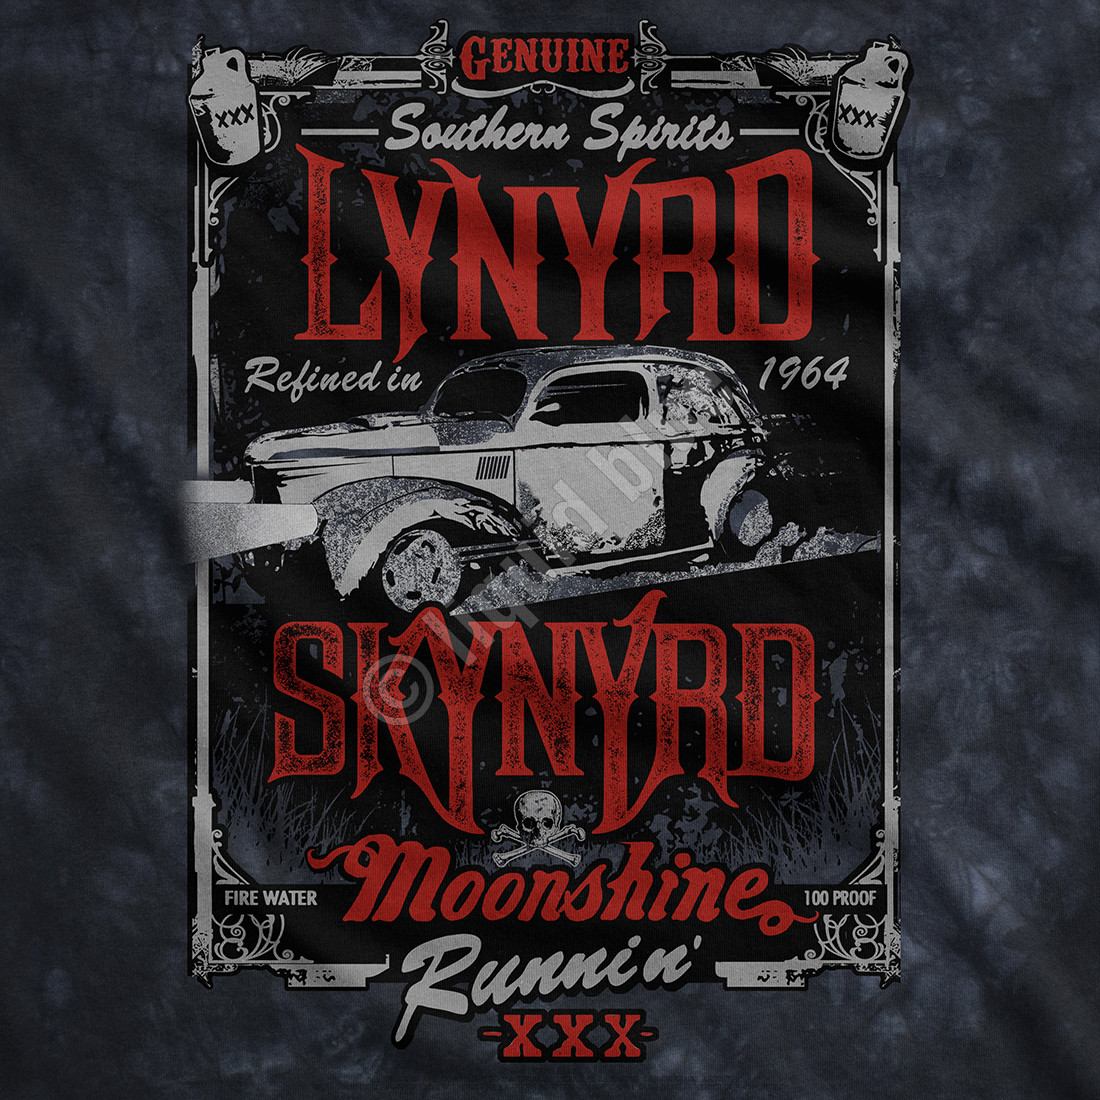 Moonshine Runnin' Tie-Dye T-Shirt